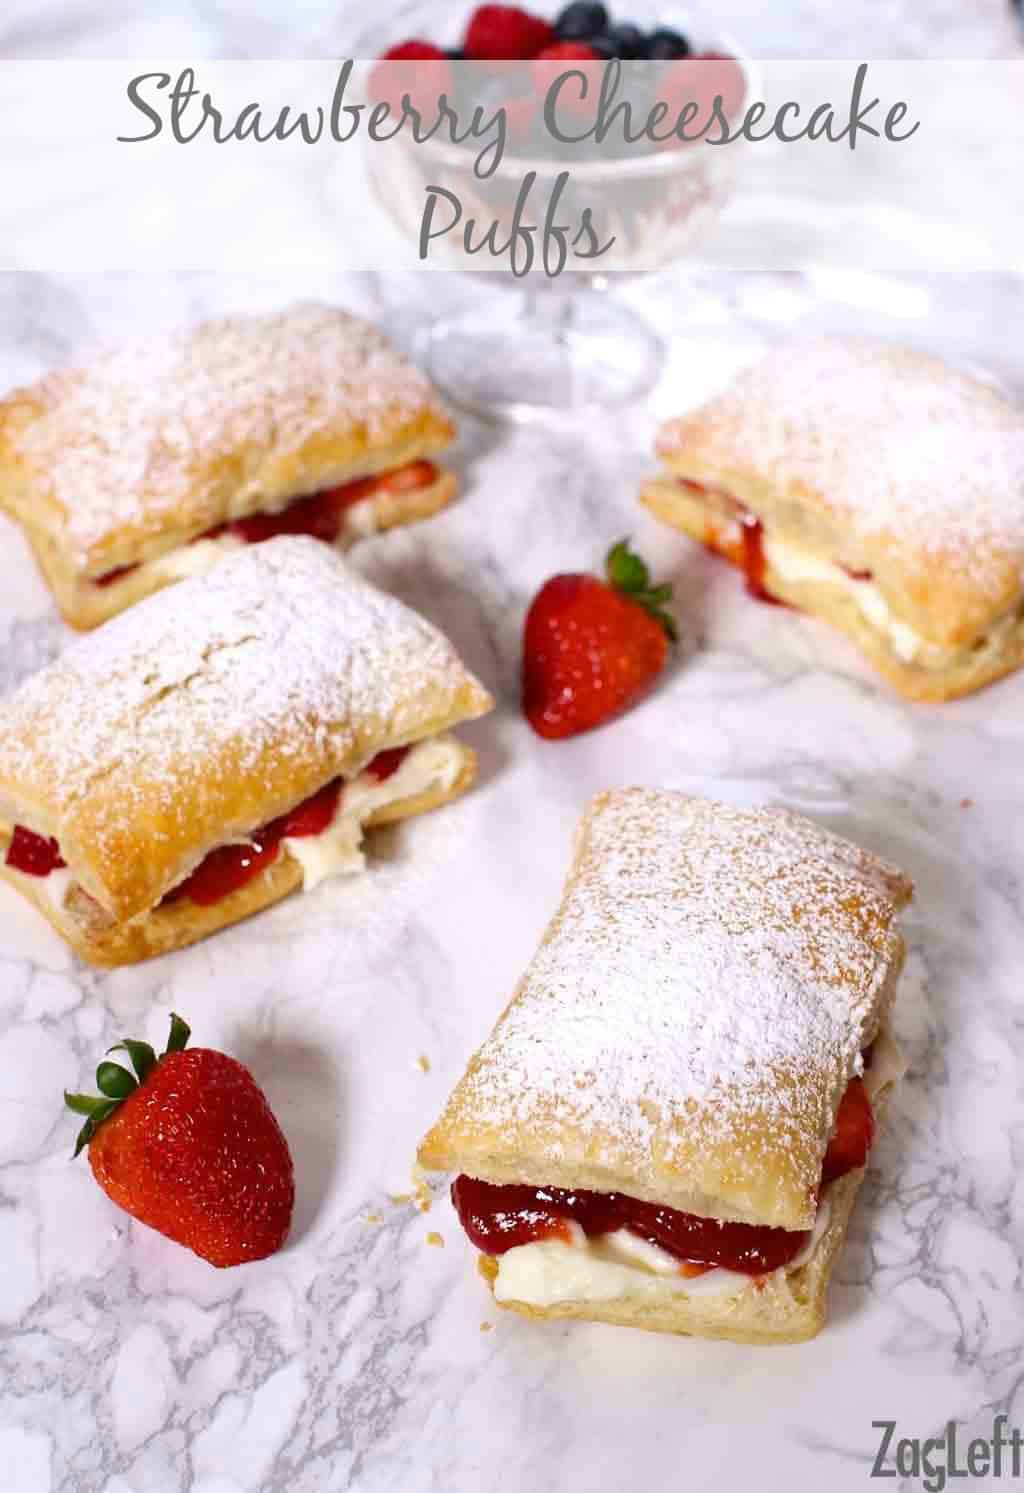 Four Strawberry Cheesecake Puffs dusted with powdered sugar next to a bowl of strawberries